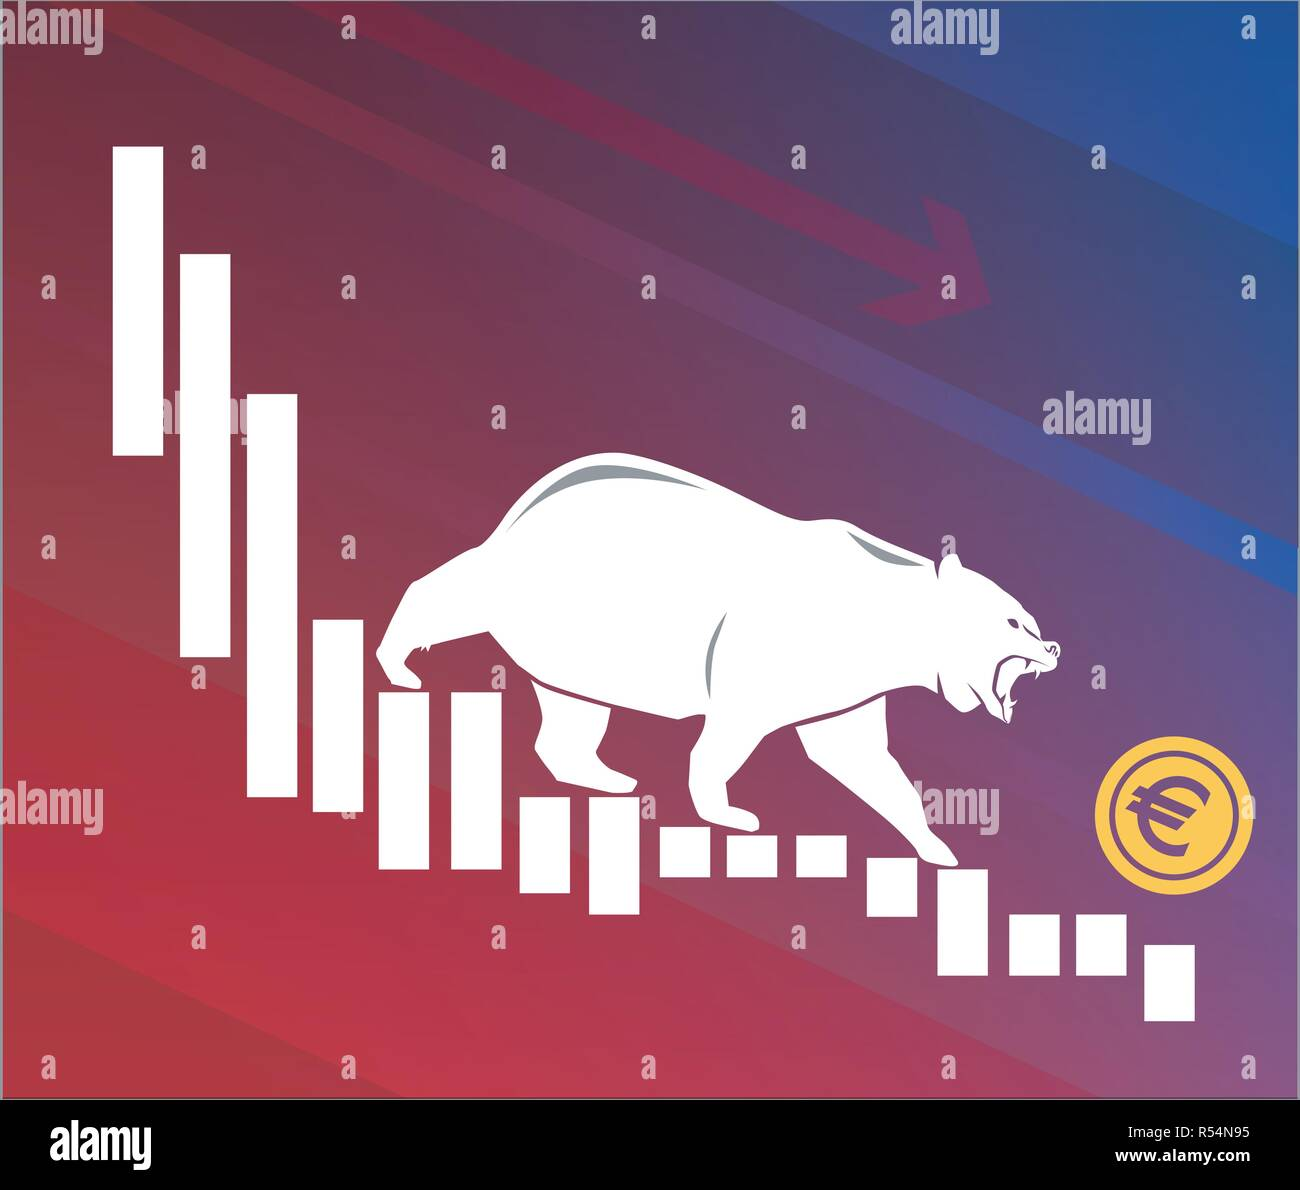 Bear moves Euro down on graph, negative currency market, red background - Stock Vector